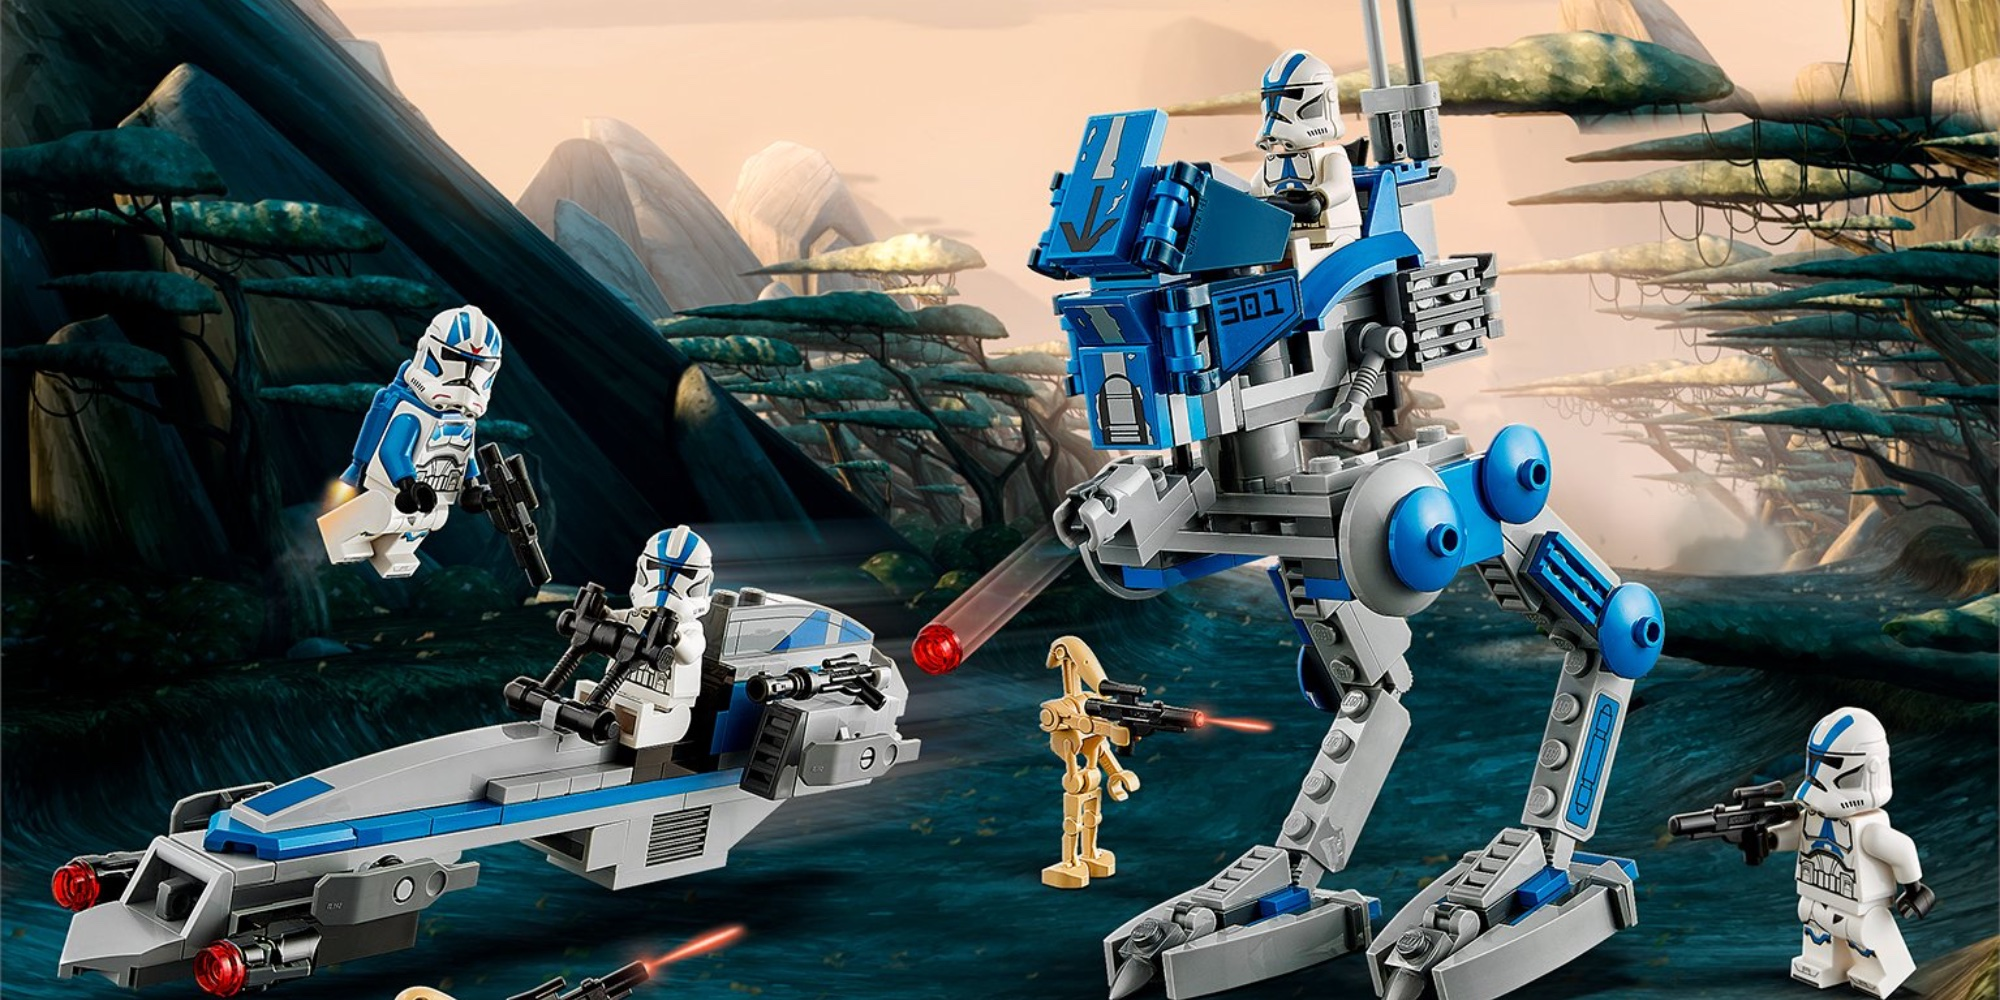 LEGO501st Clone Troopers